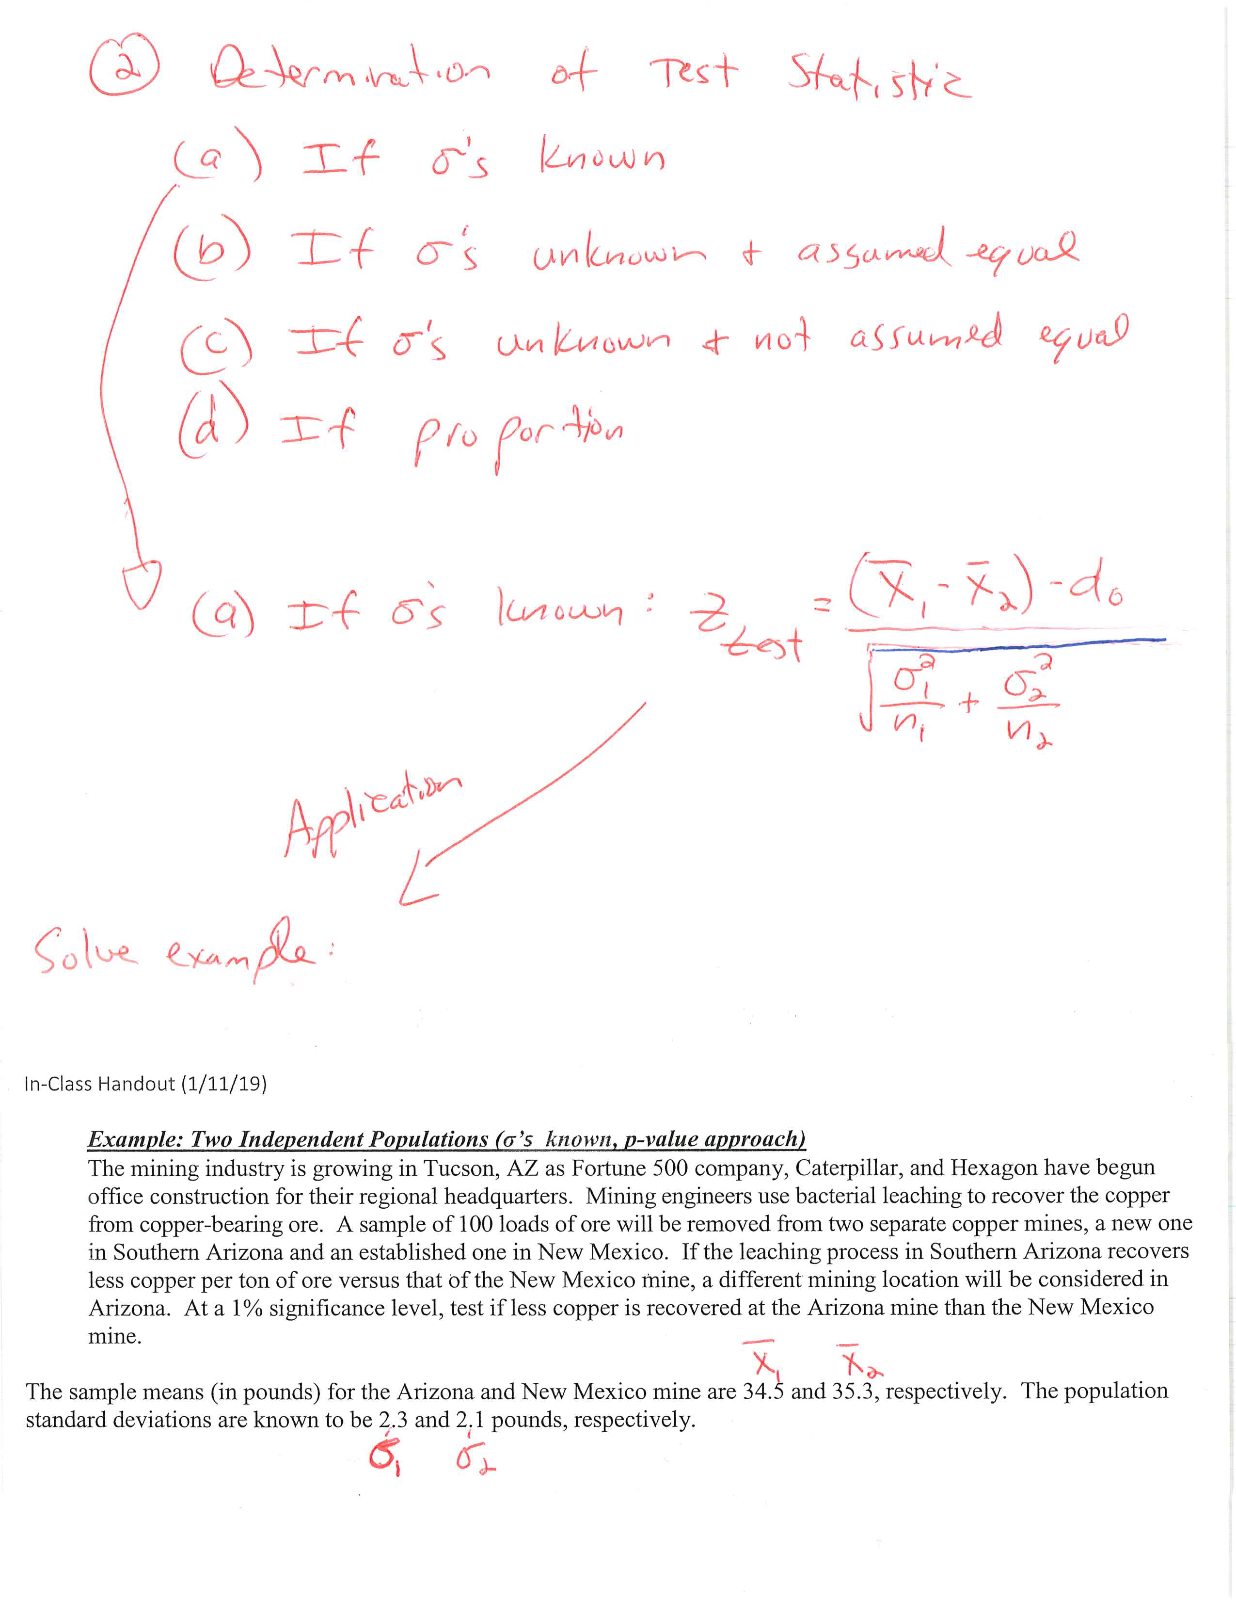 Lecture notes 1_11_19_Page_6